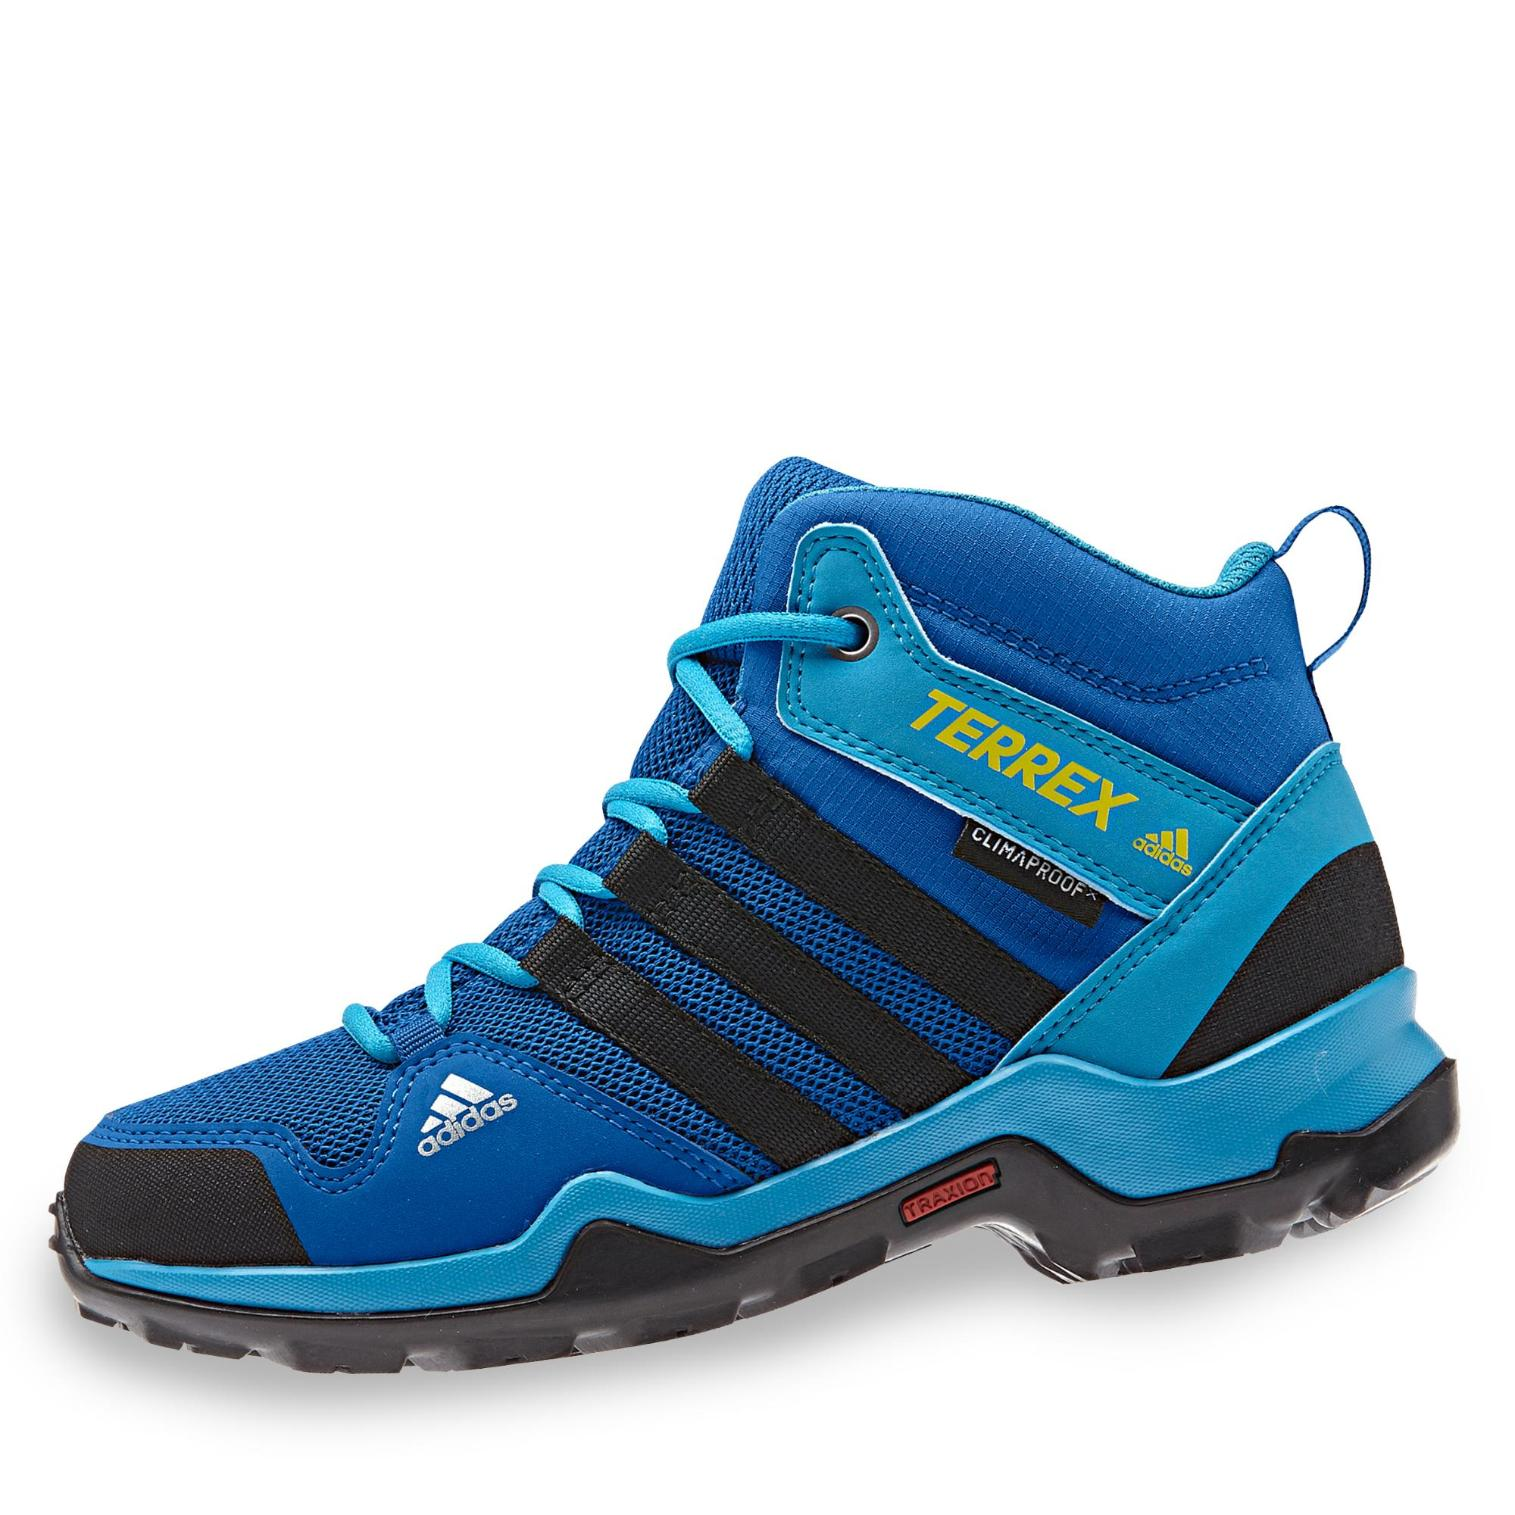 adidas Terrex AX2R Mid Climaproof Outdoorschuh in Farbe